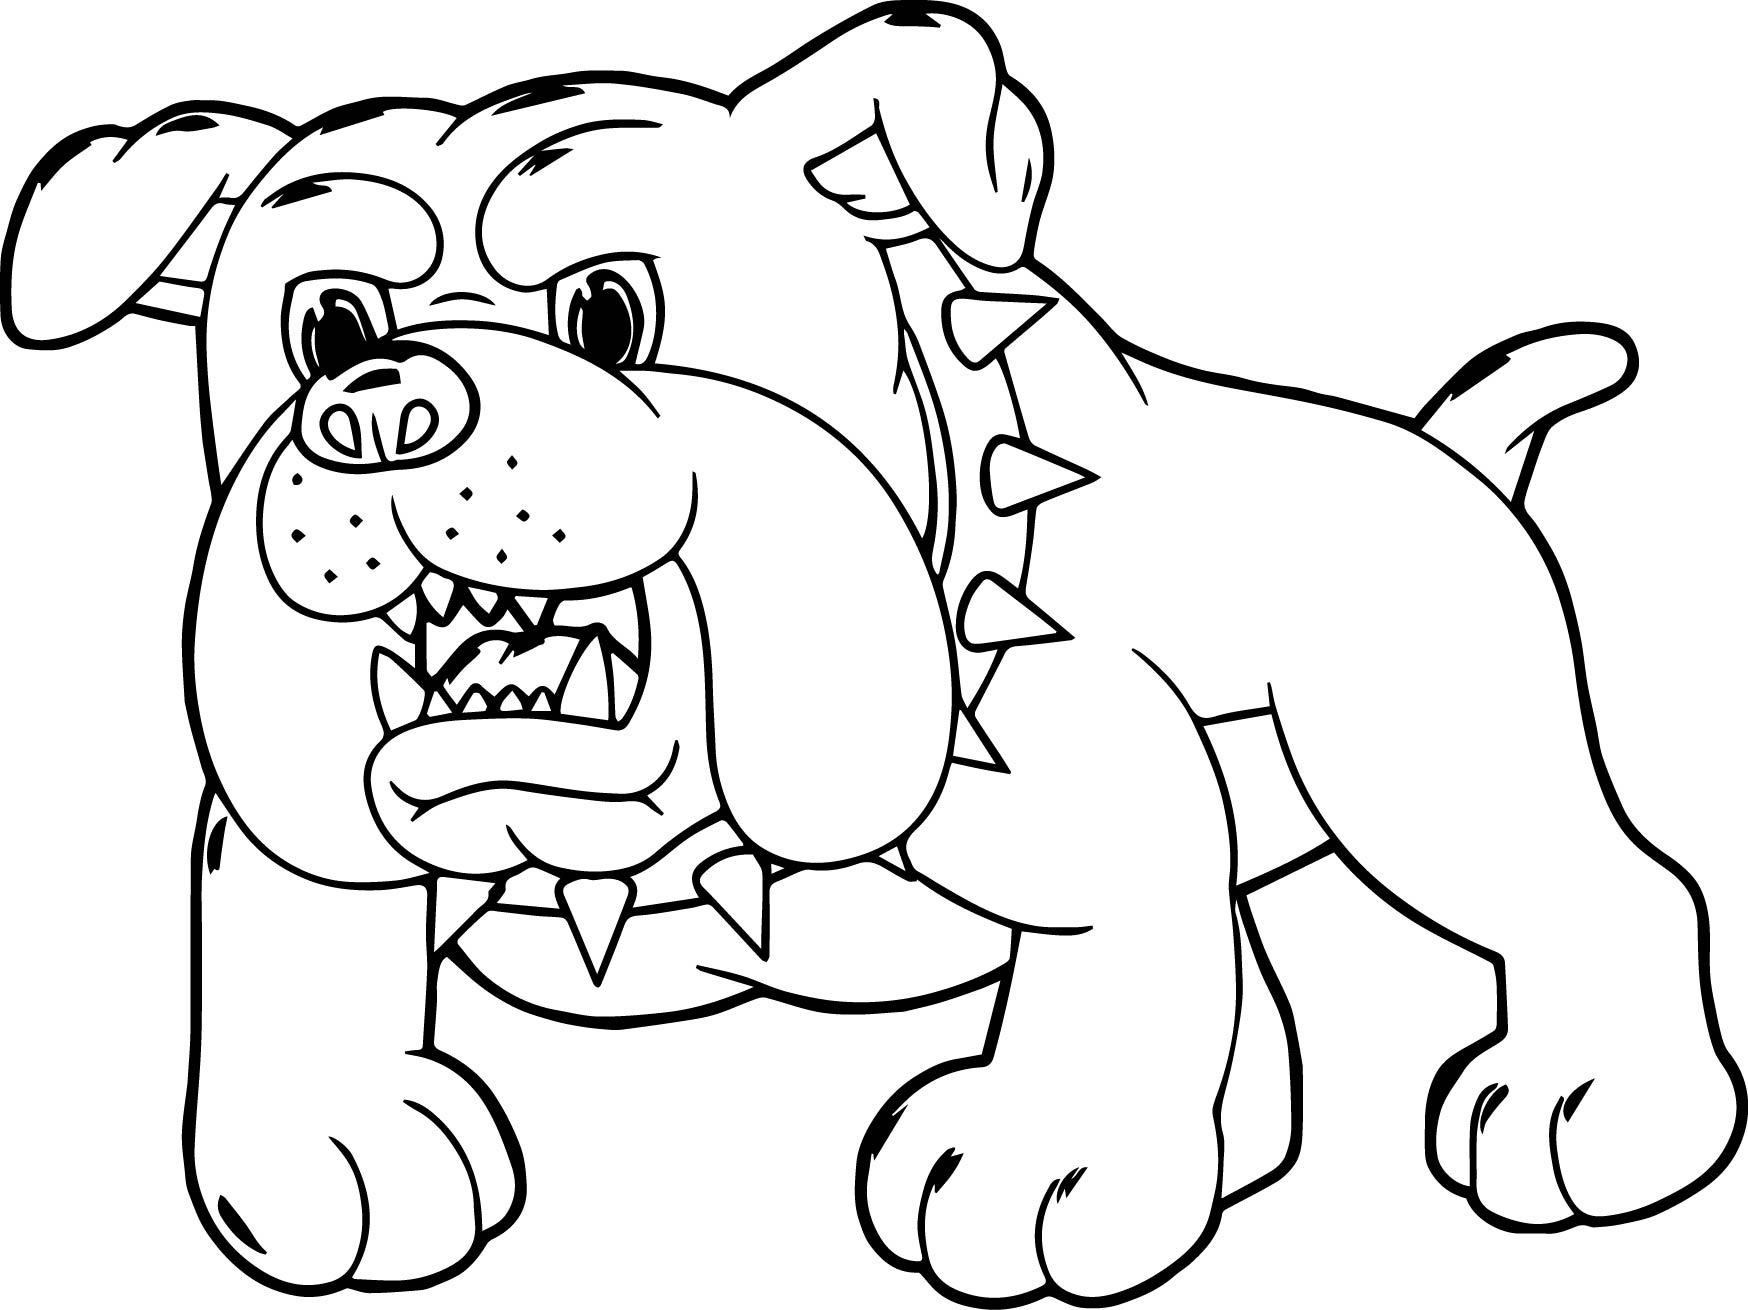 Rottweiler Puppies Coloring Pages From The Thousand Images On